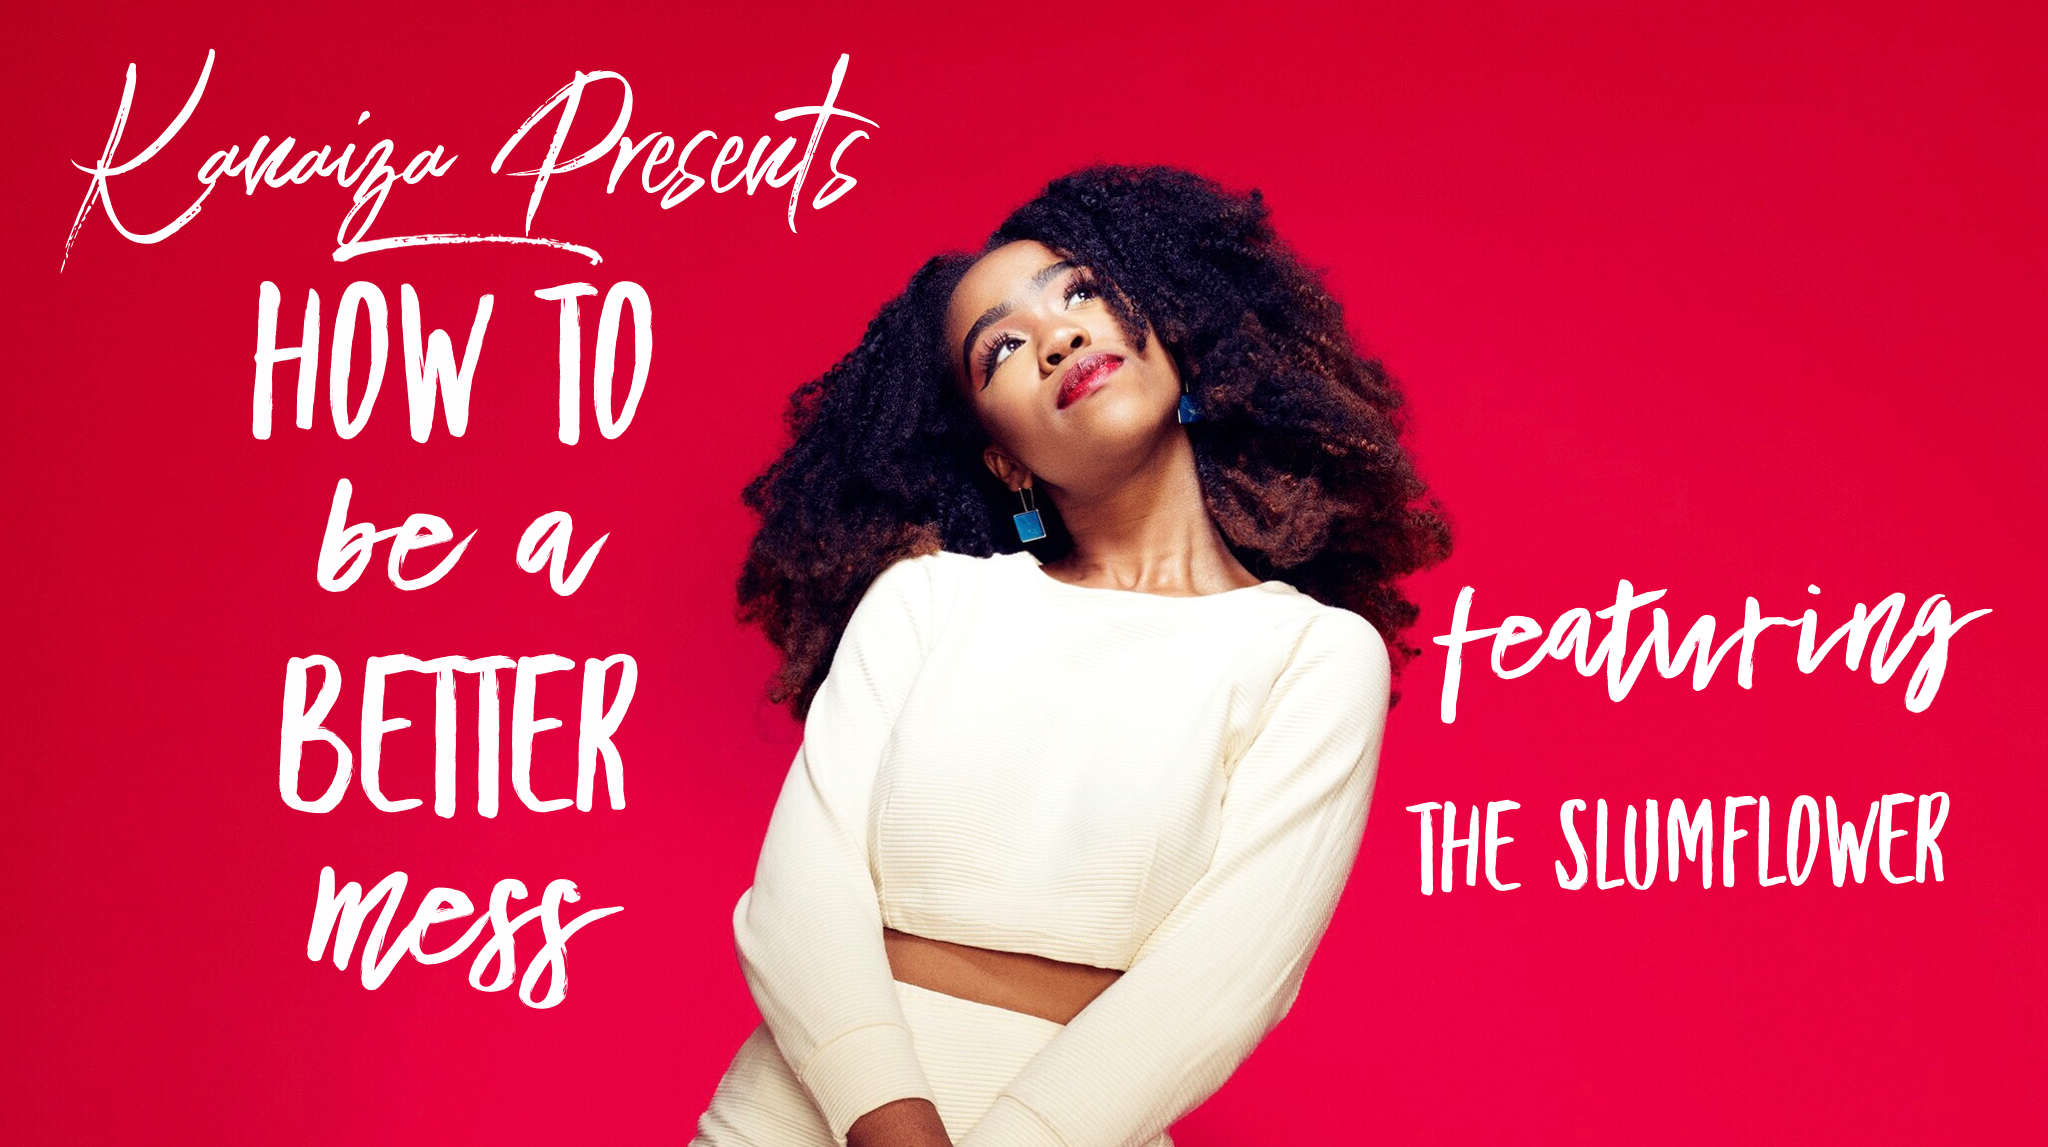 Join us  on thursday 30th august  @southplacehotel  as we explore how to be a better mess with  @theslumflower